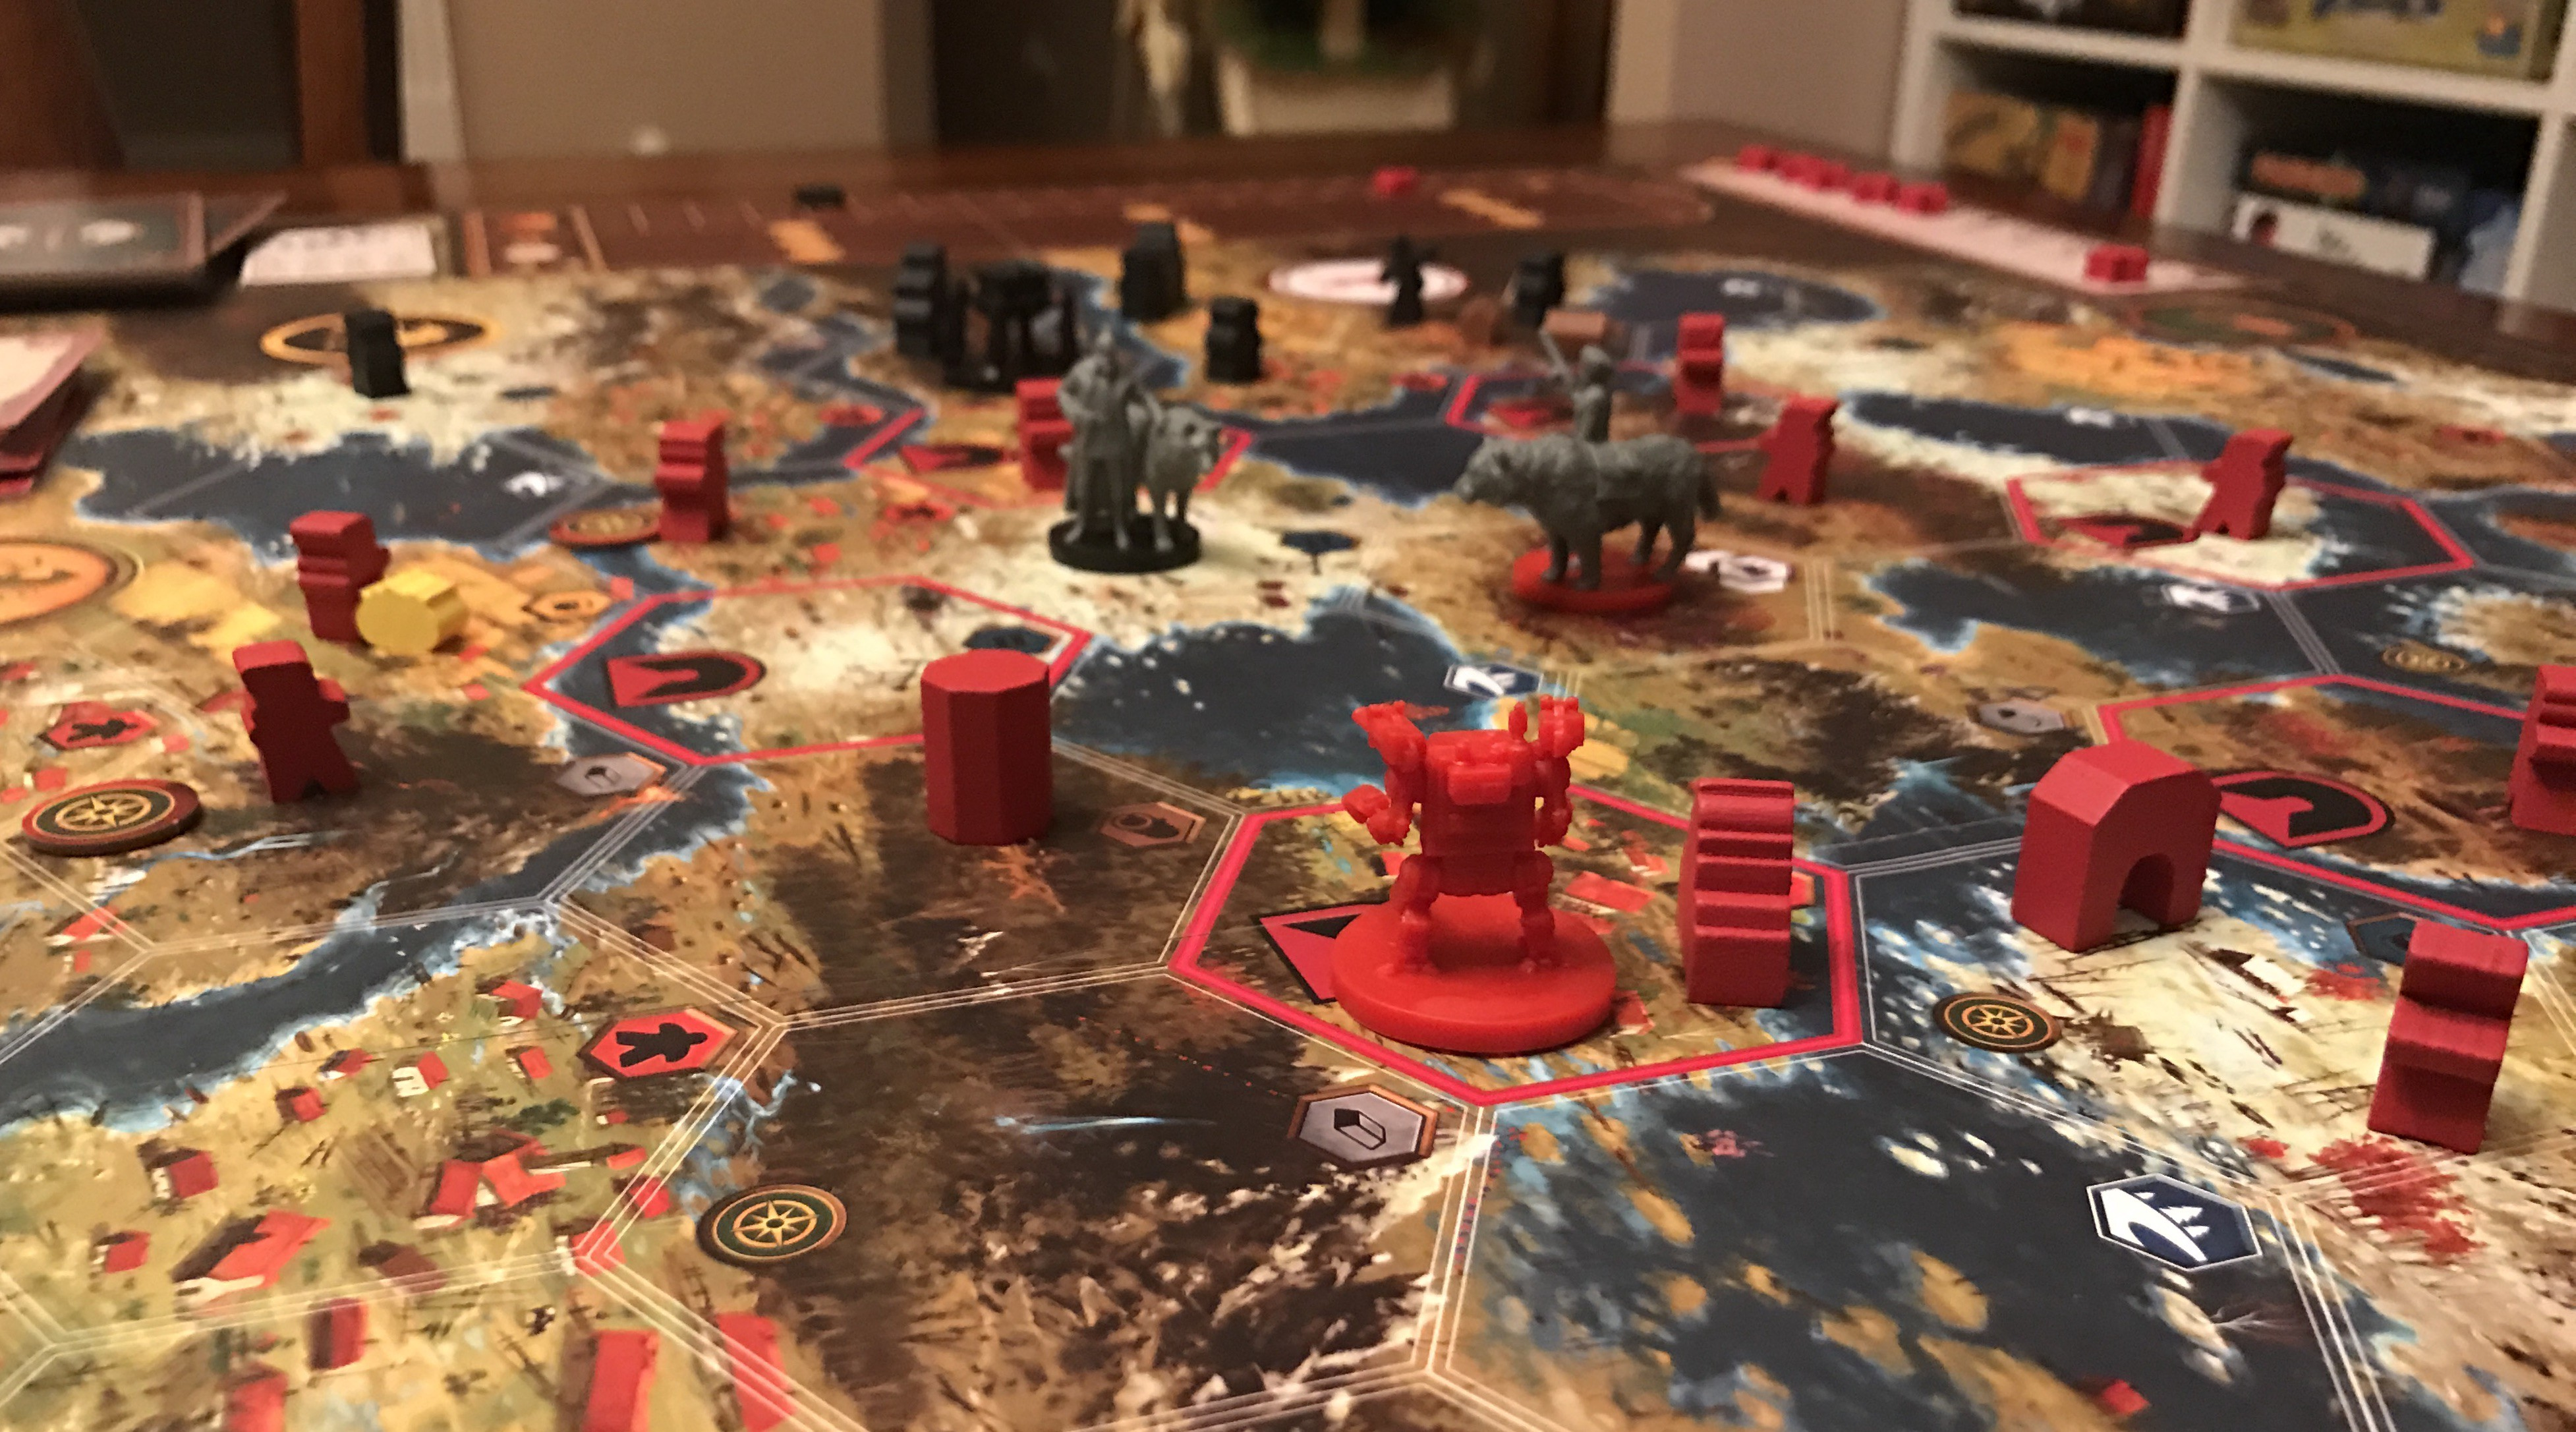 Scythe Board Game Multiplayer Strategy Historical Games 115 Minutes Playtime